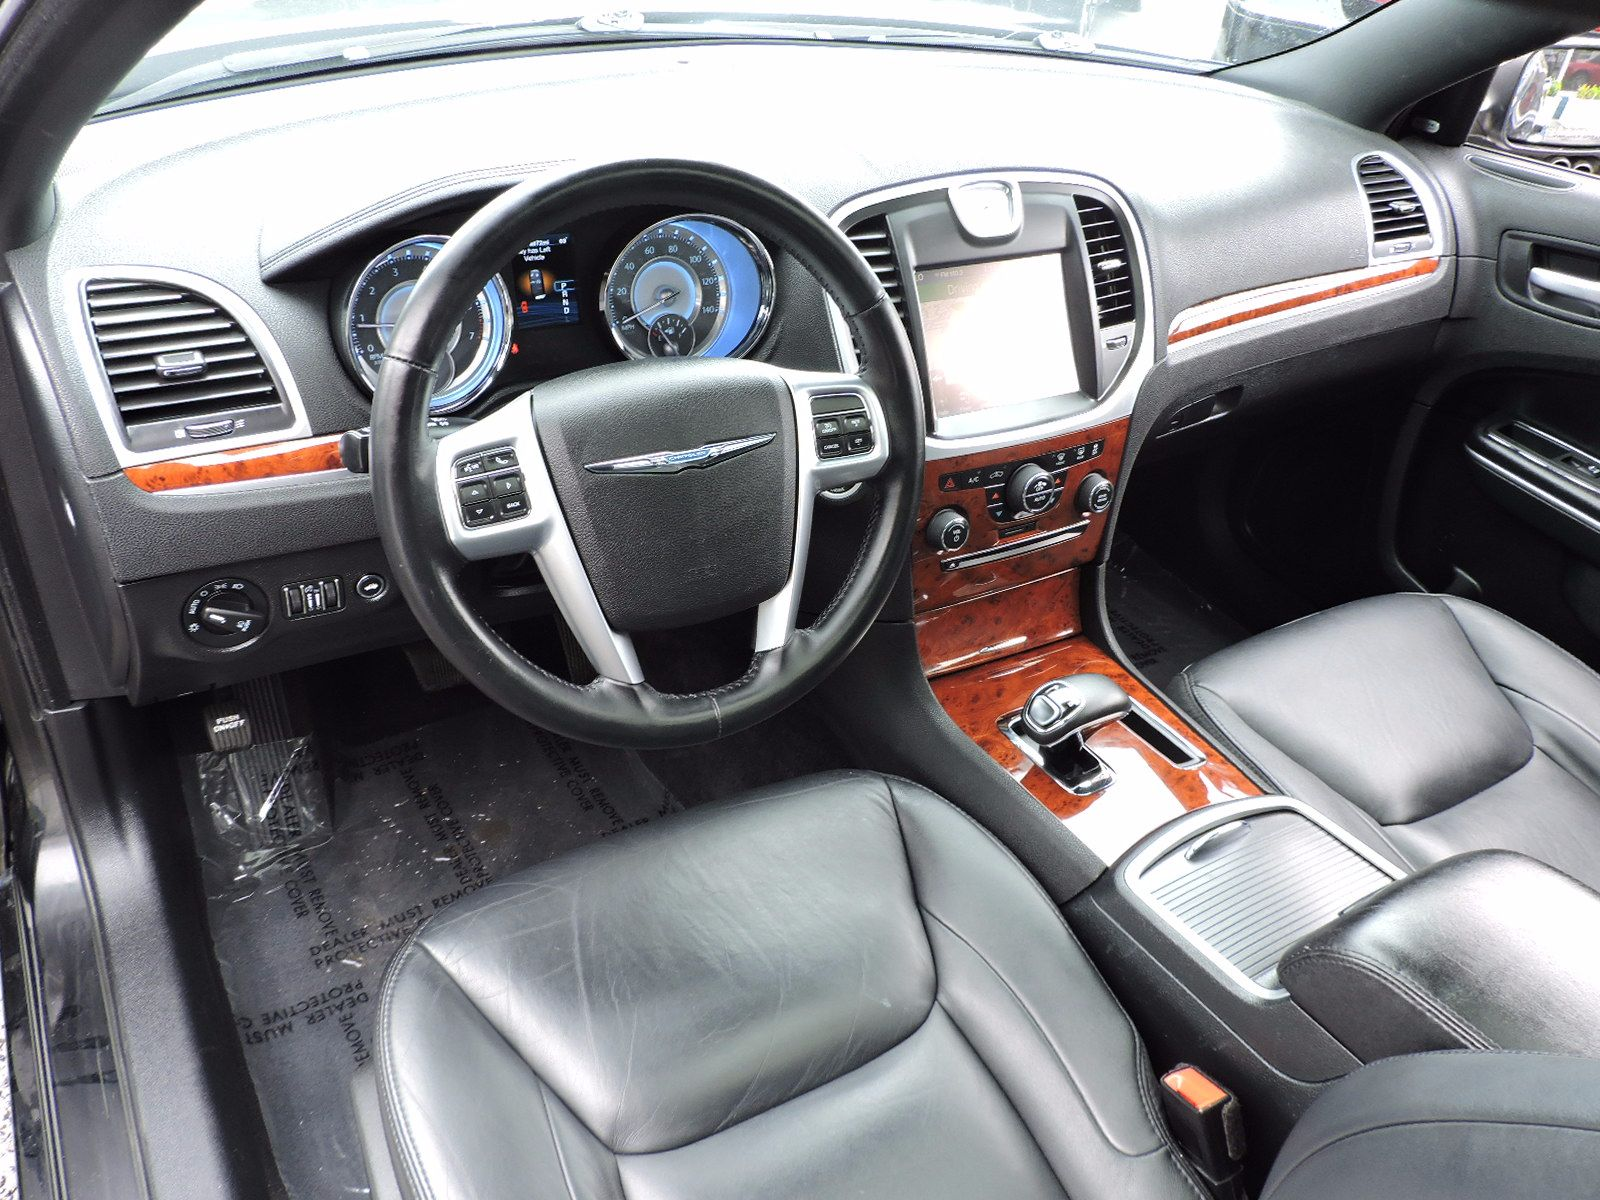 2012 Chrysler 300 - Limited Edition - All Wheel Drive - Navigation